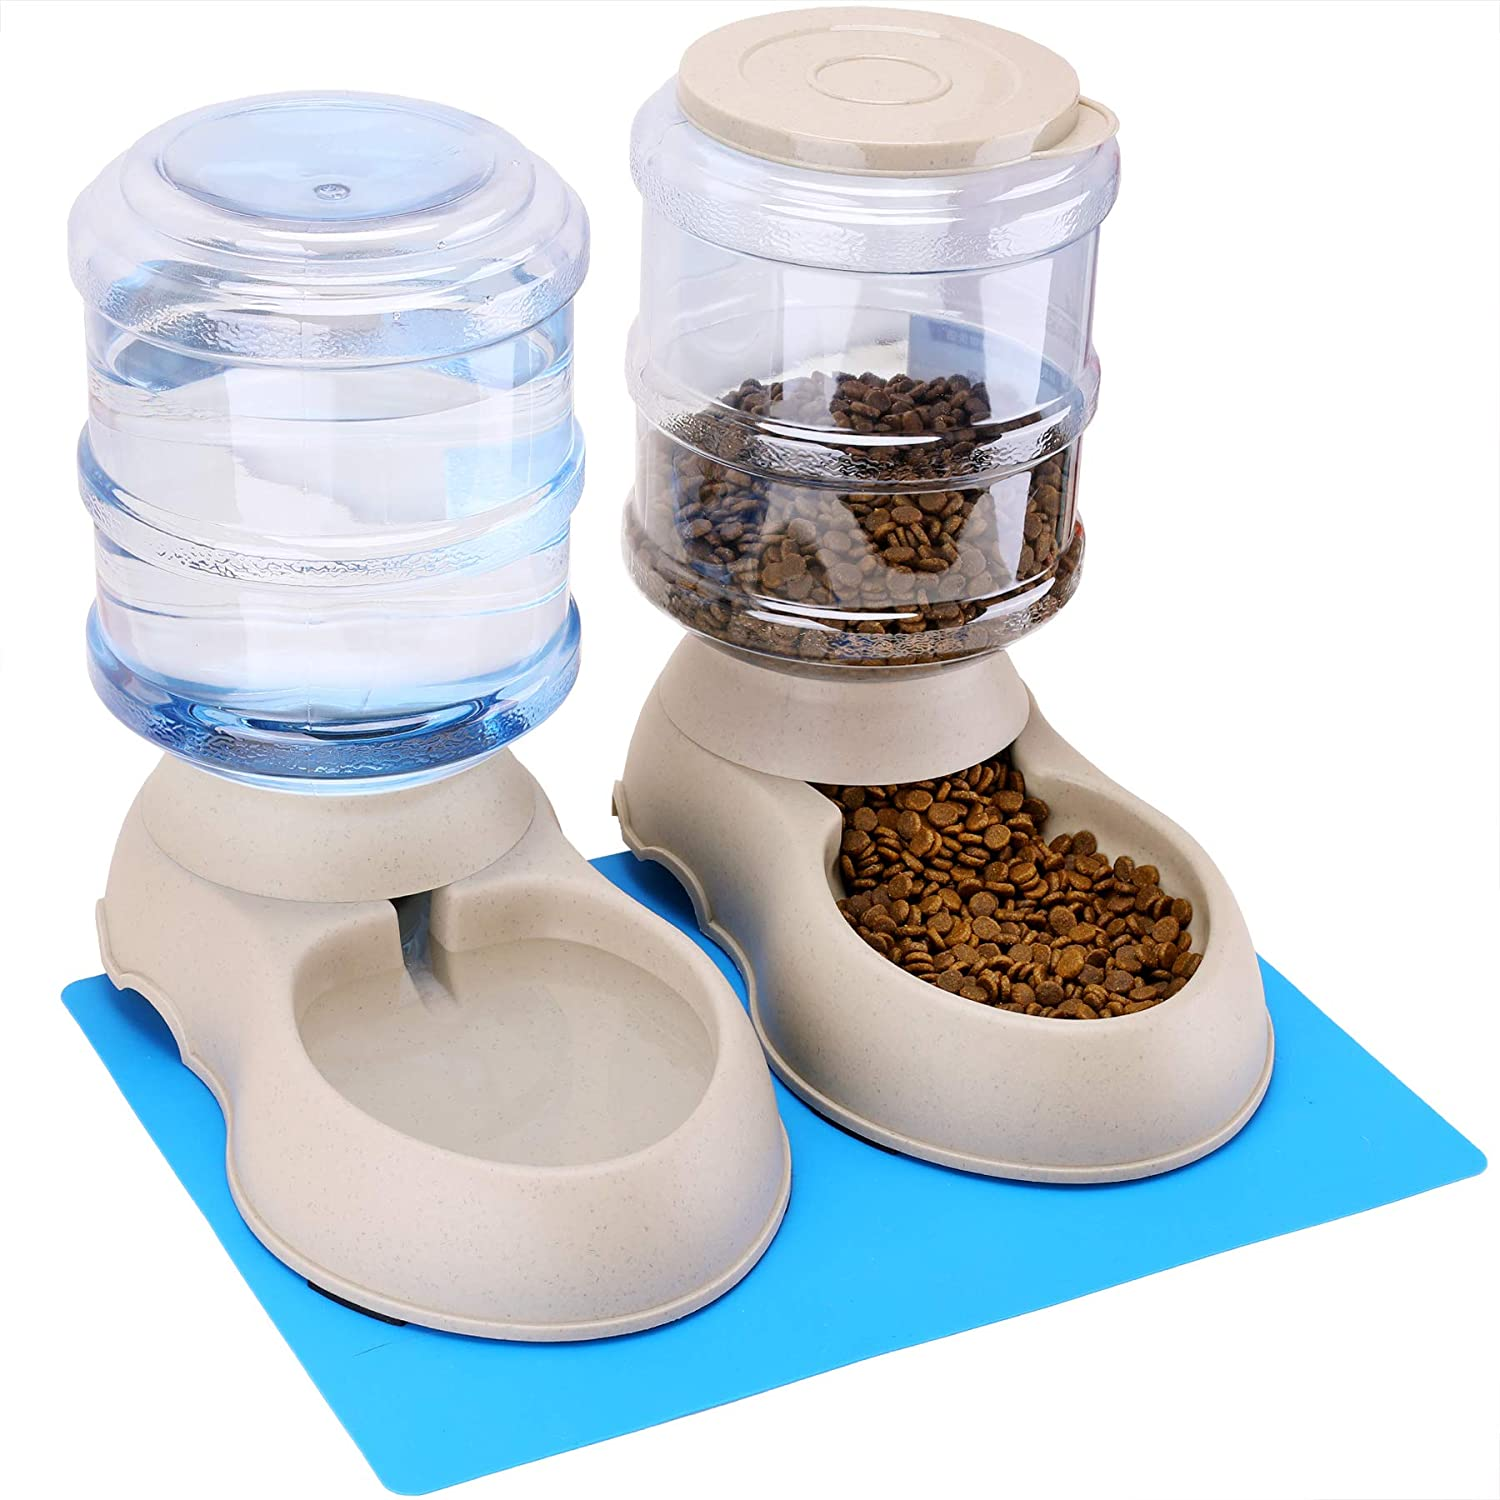 Automatic Cat Feeder And Water Dispenser Spring Valley Goods